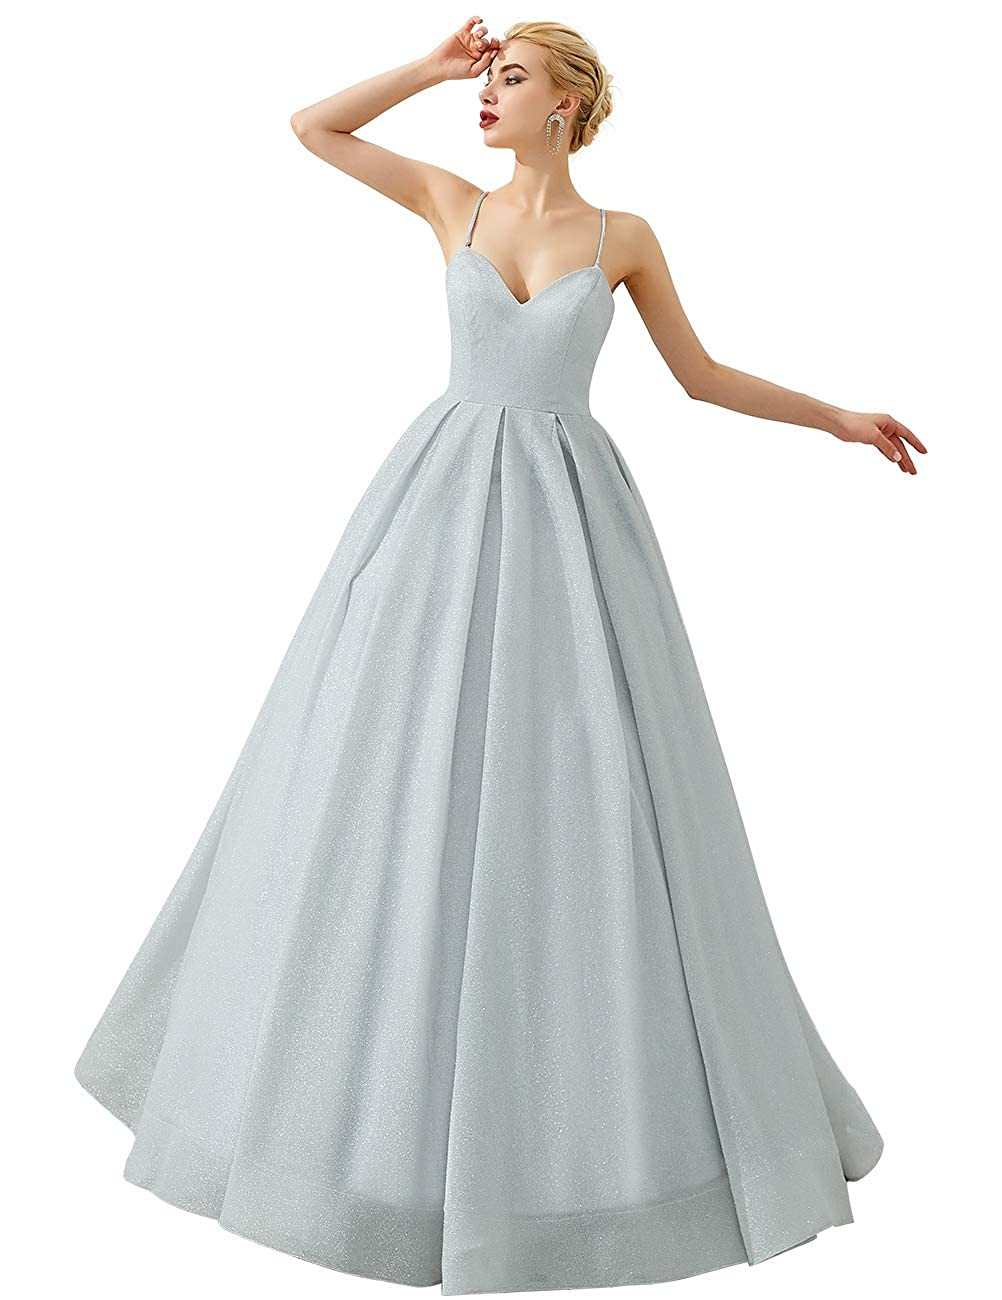 Silver VKBRIDAL Women's Glittery Prom Dresses Long Formal Evening Party Ball Gowns